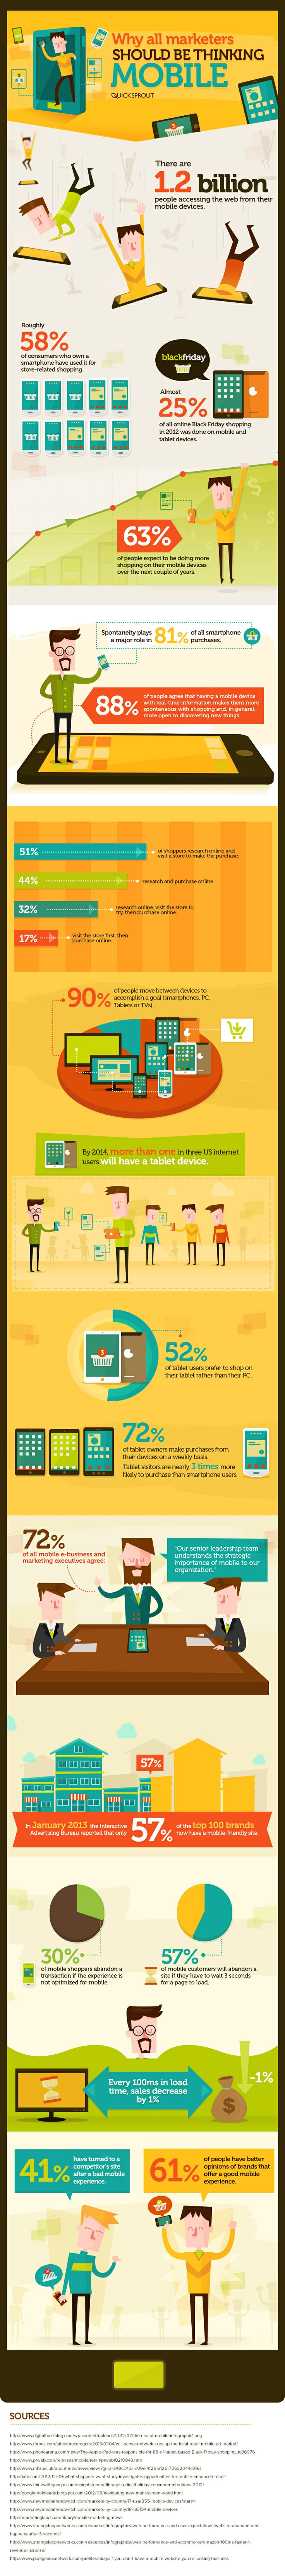 Why All Marketers Should Be Thinking Mobile [INFOGRAPHIC] #marketers #mobile